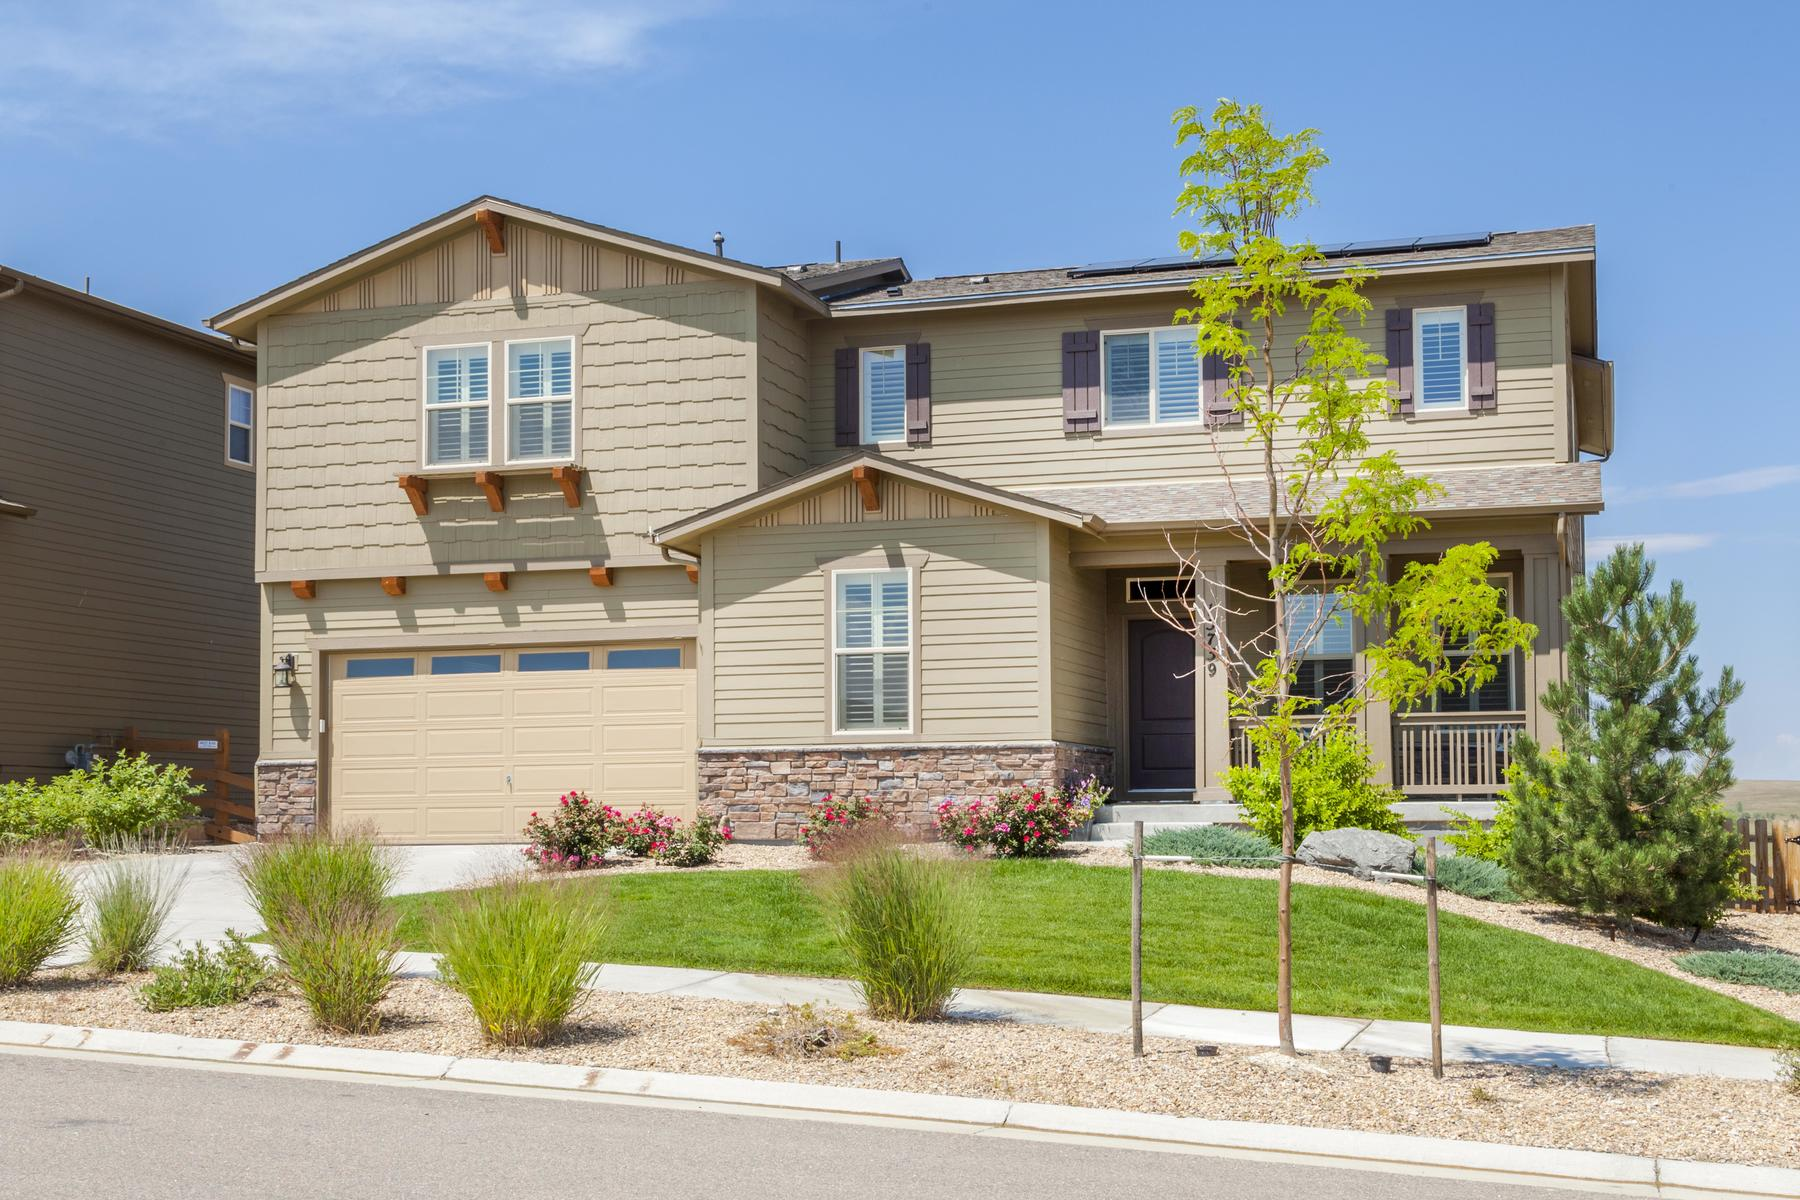 Single Family Home for Sale at *Wow!*Why Wait To Build When You Can Buy This Home Today?! 15739 West 95th Place Arvada, Colorado, 80007 United States